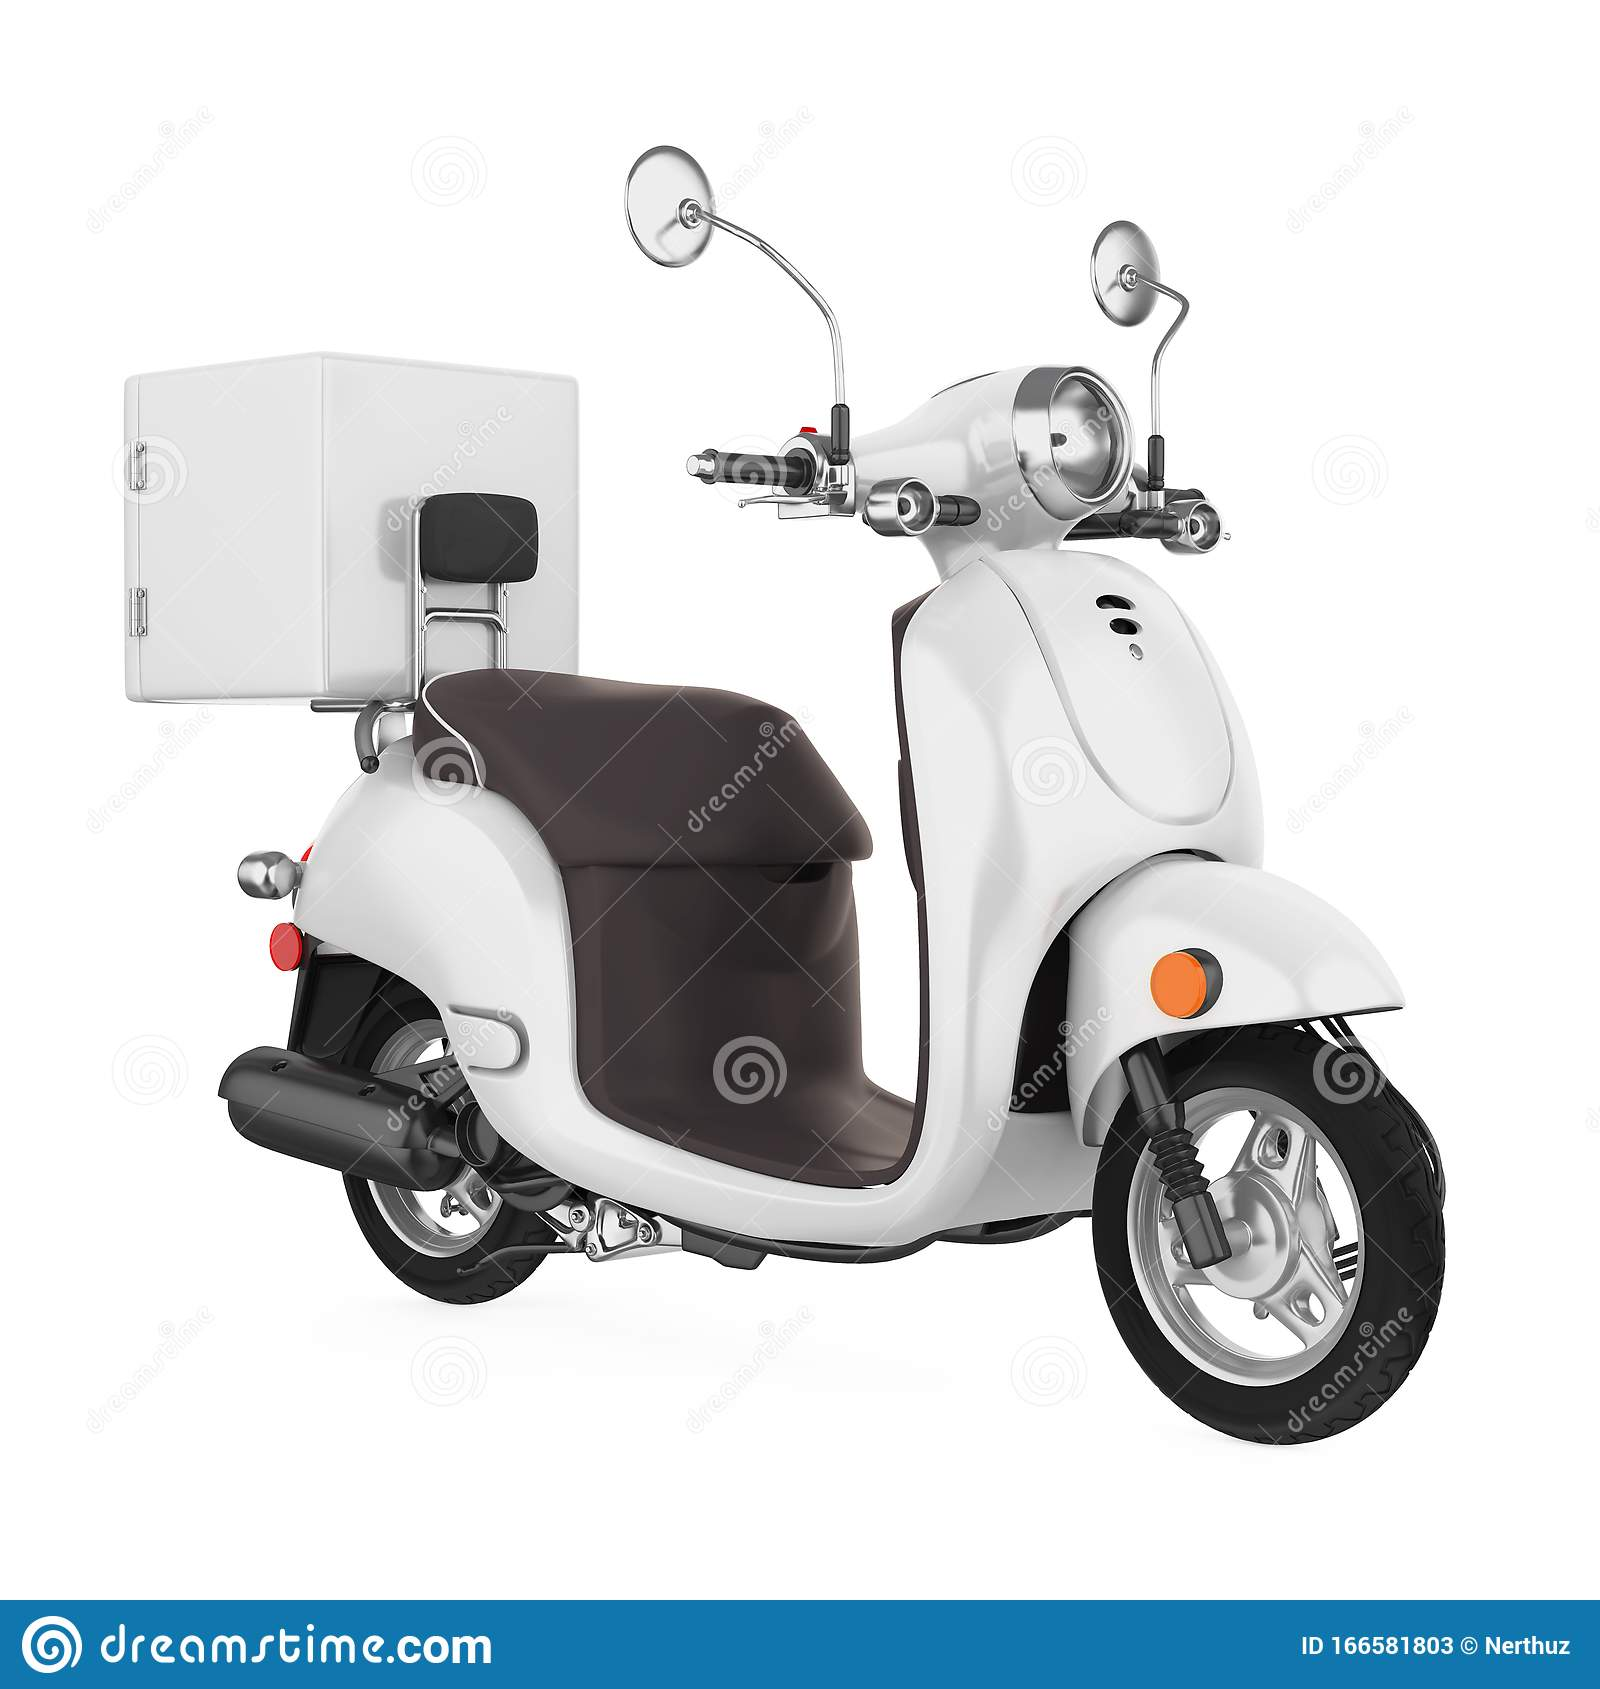 Download in psd ai and cmyk mode. Motorcycle Delivery Box Isolated Stock Illustration Illustration Of Isolated Side 166581803